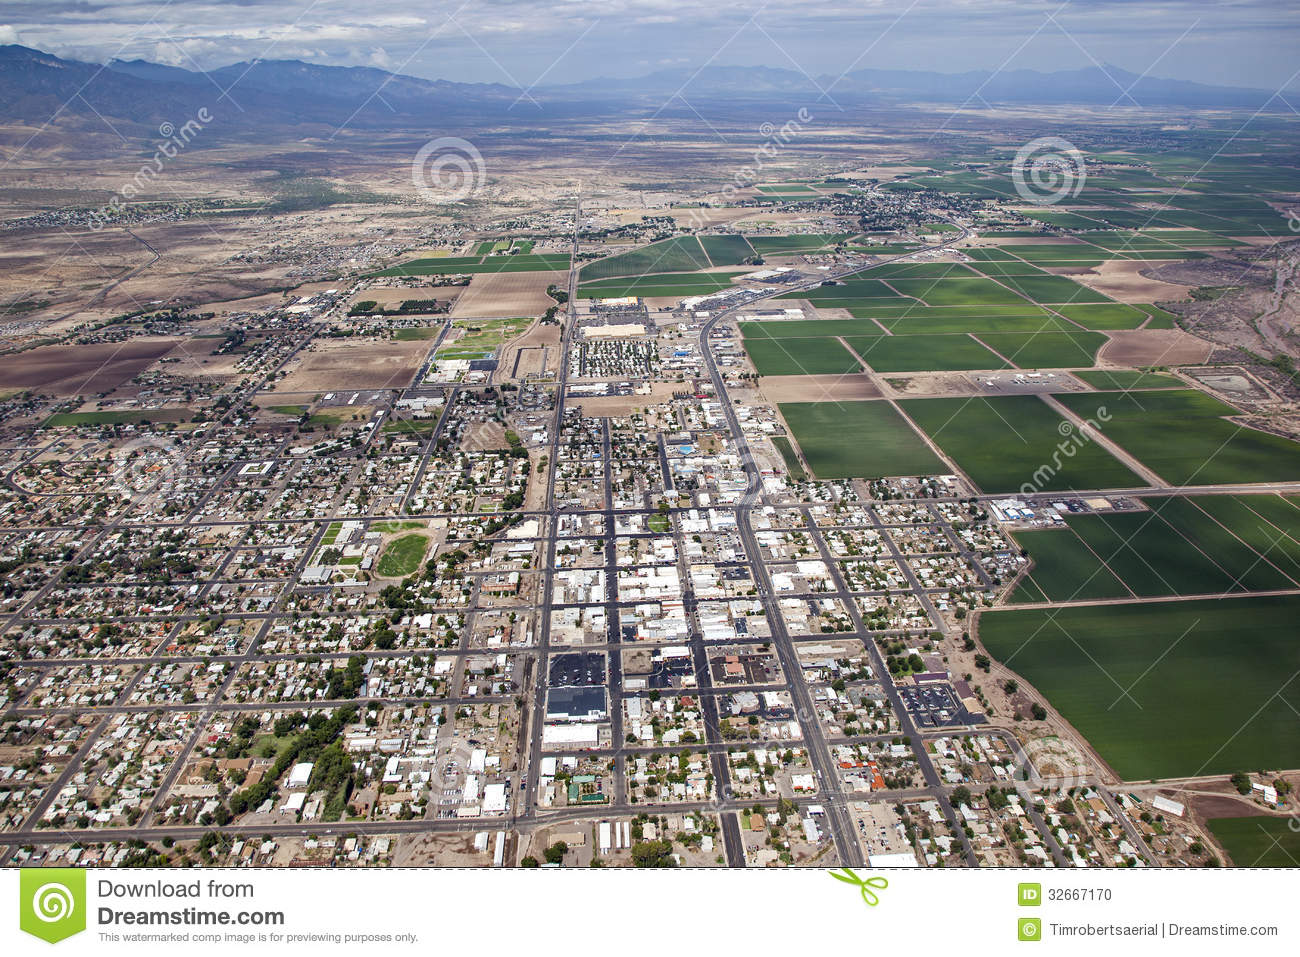 Aerial view of the town of Safford in Southeast Arizona.